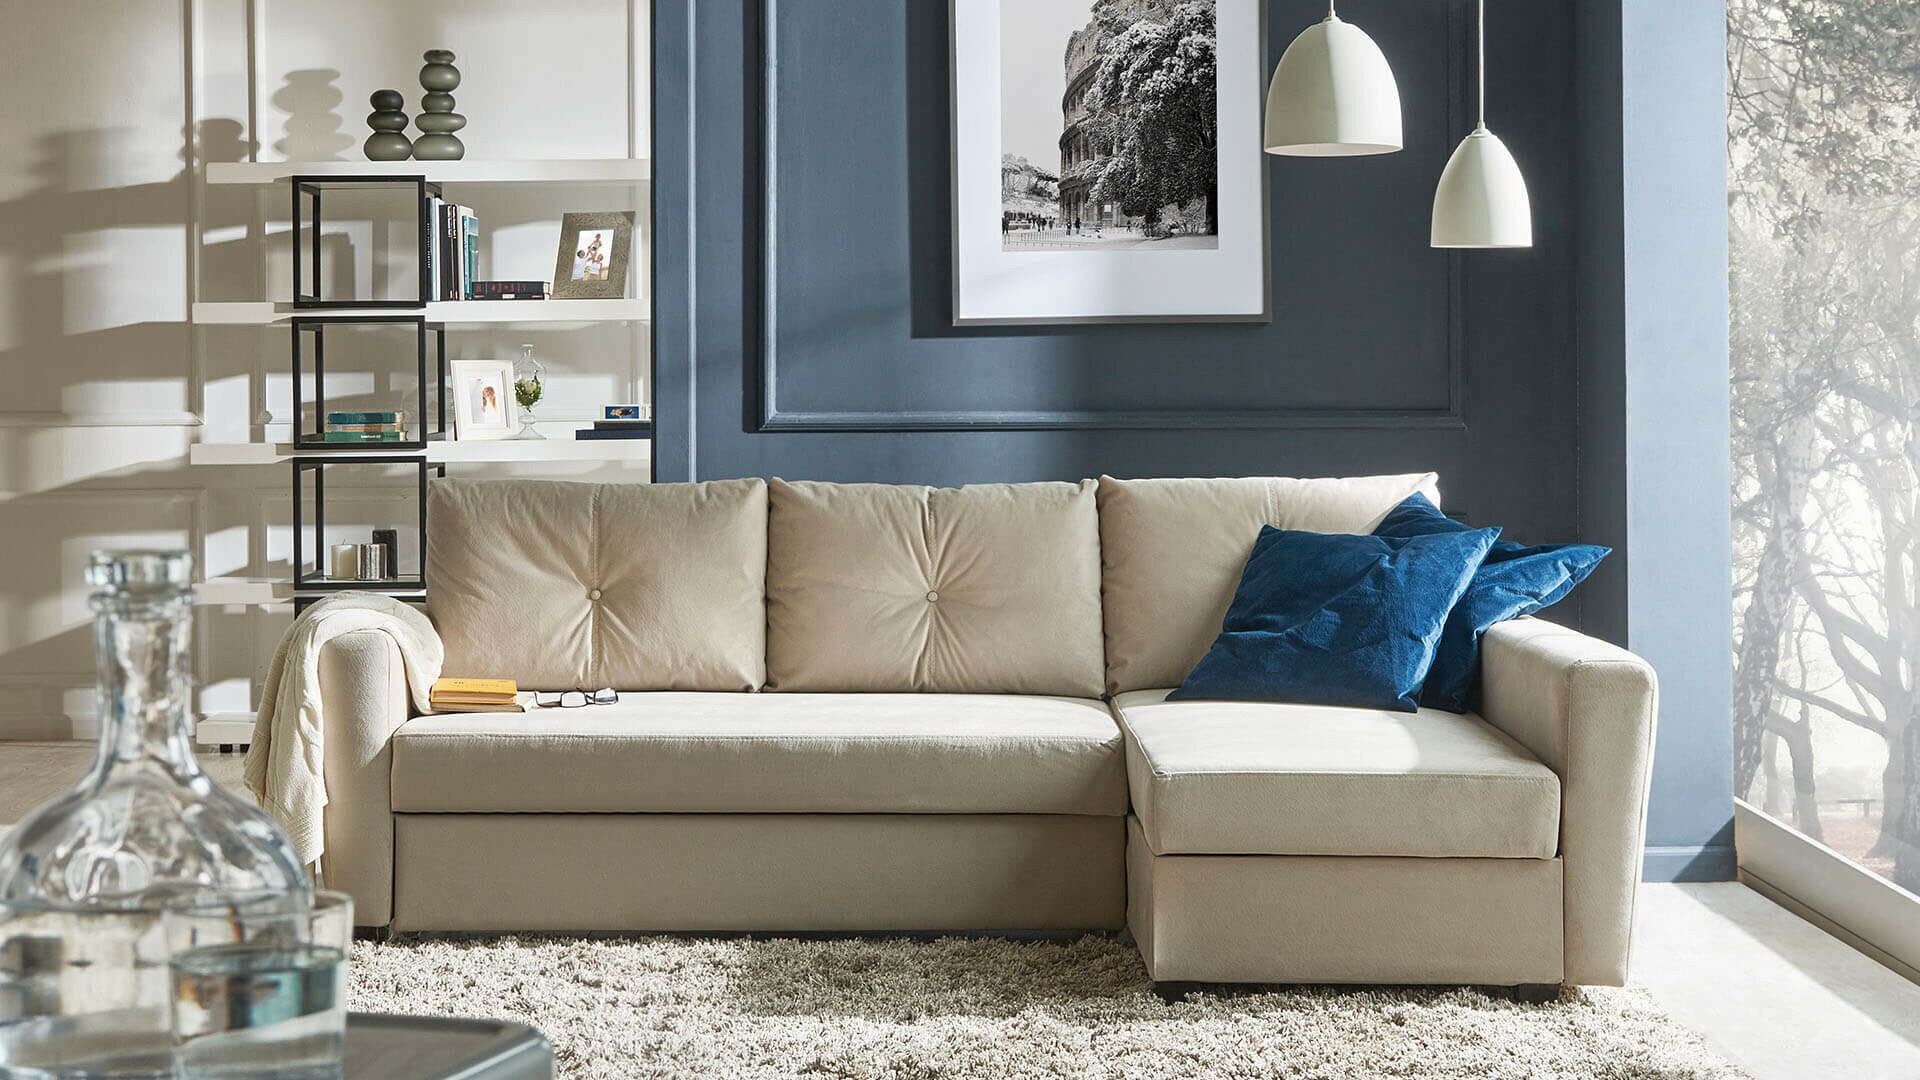 MATERA Sleeper Sectional Sofa With Storage